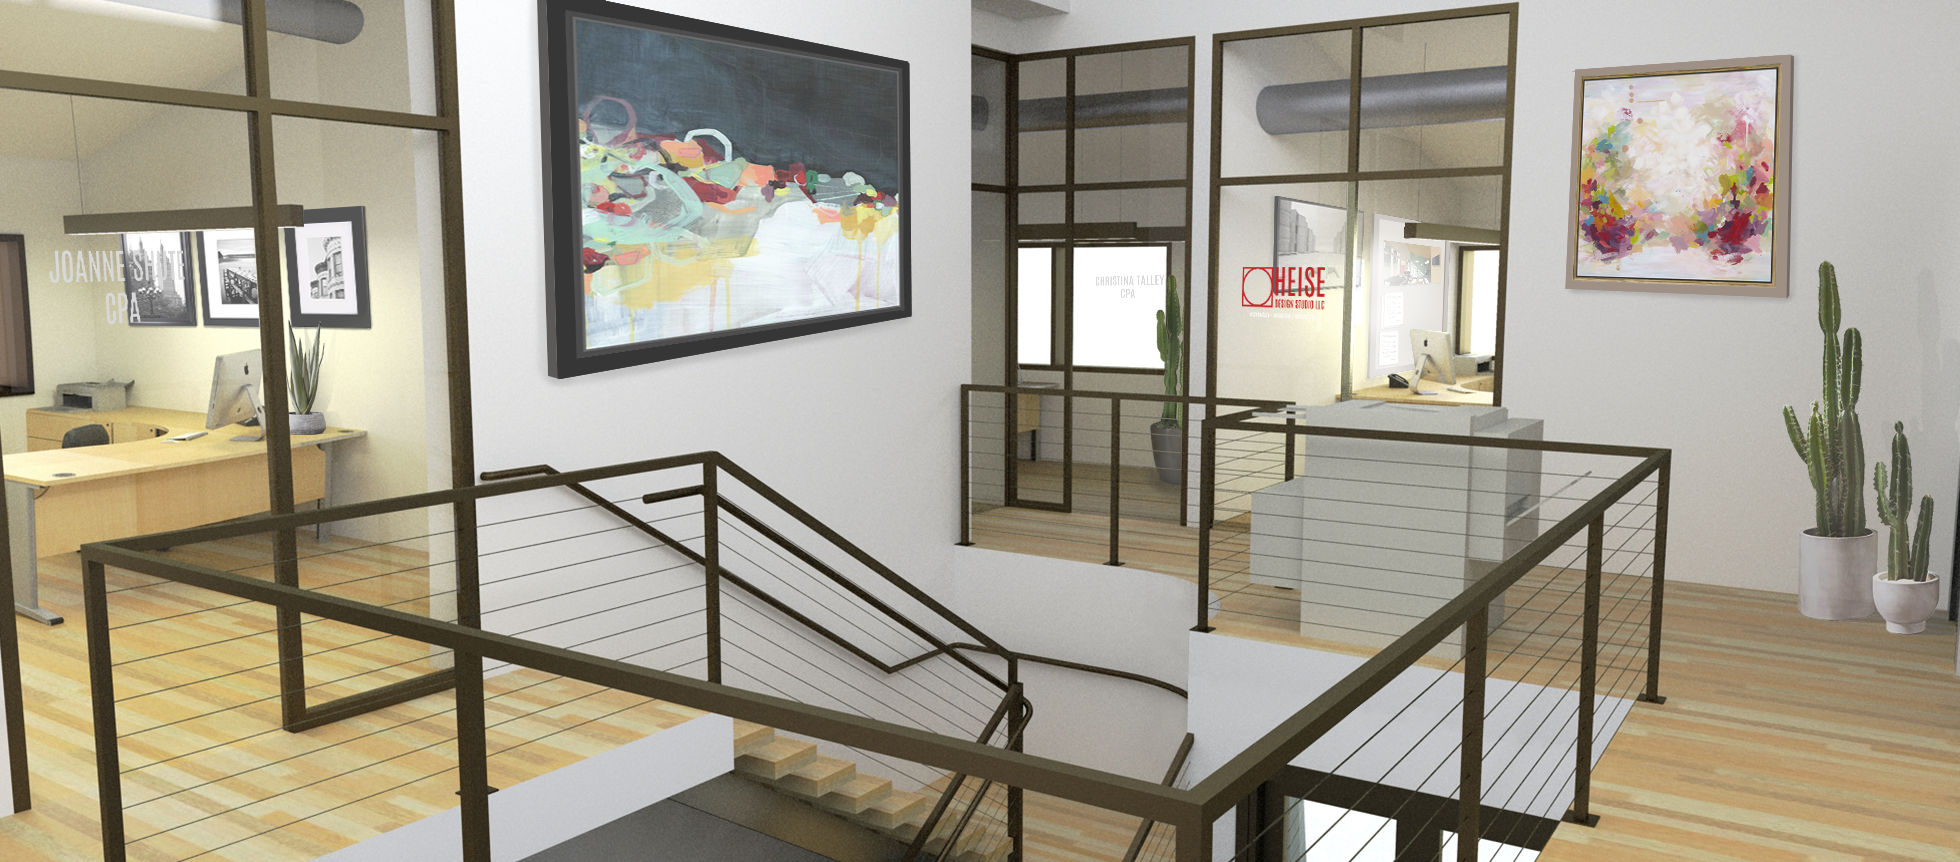 A rendered view at the second floor across the open stair well. Glass portions in each suite and the newly vaulted ceilings increase the openness and light of the interior spaces. Rendering by Erin O'Loughlin, Heise Design Studio.